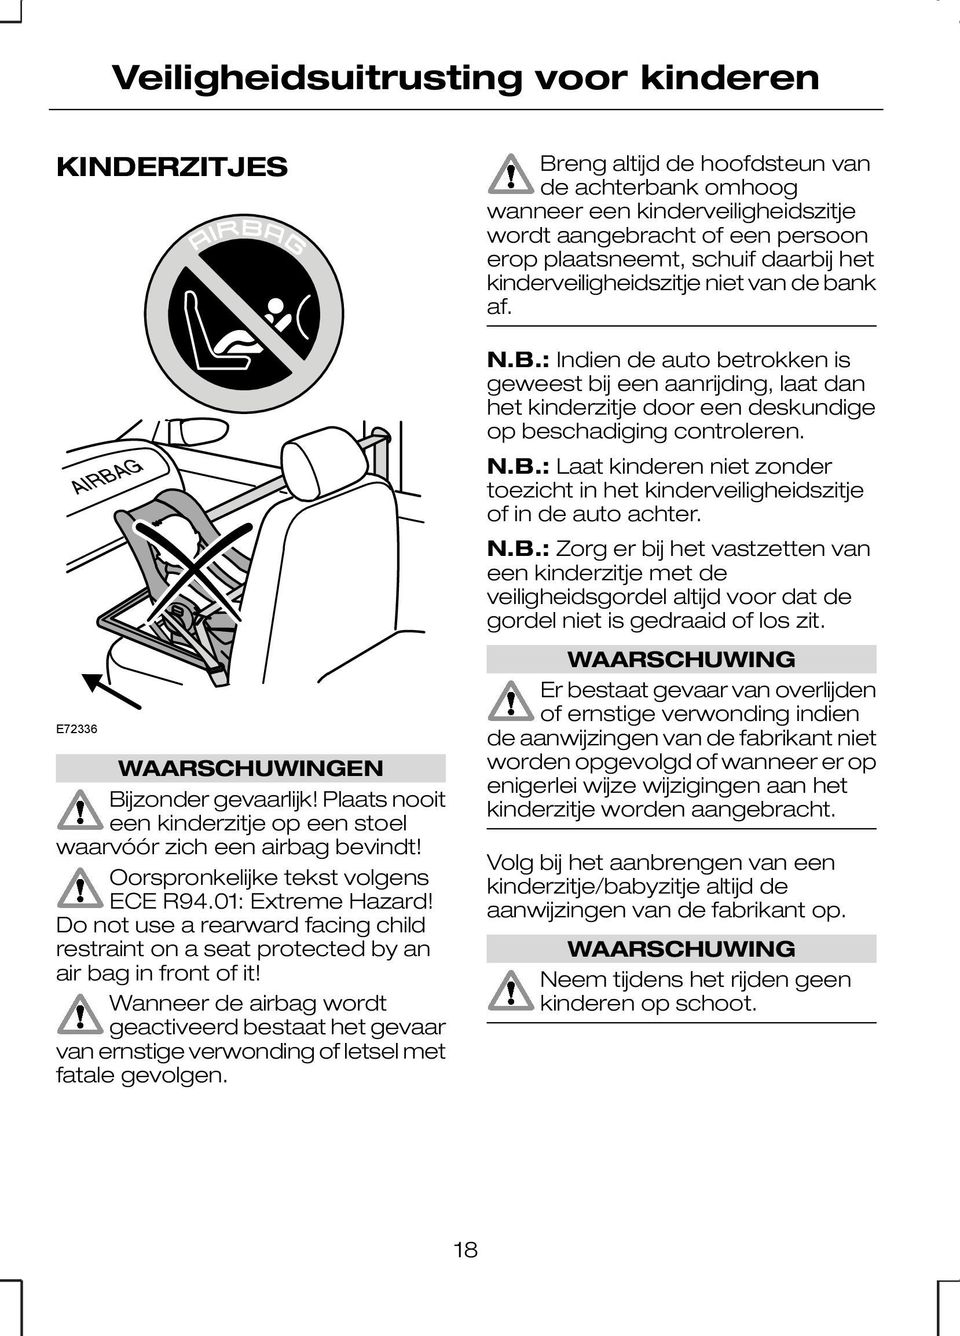 Oorspronkelijke tekst volgens ECE R94.01: Extreme Hazard! Do not use a rearward facing child restraint on a seat protected by an air bag in front of it!